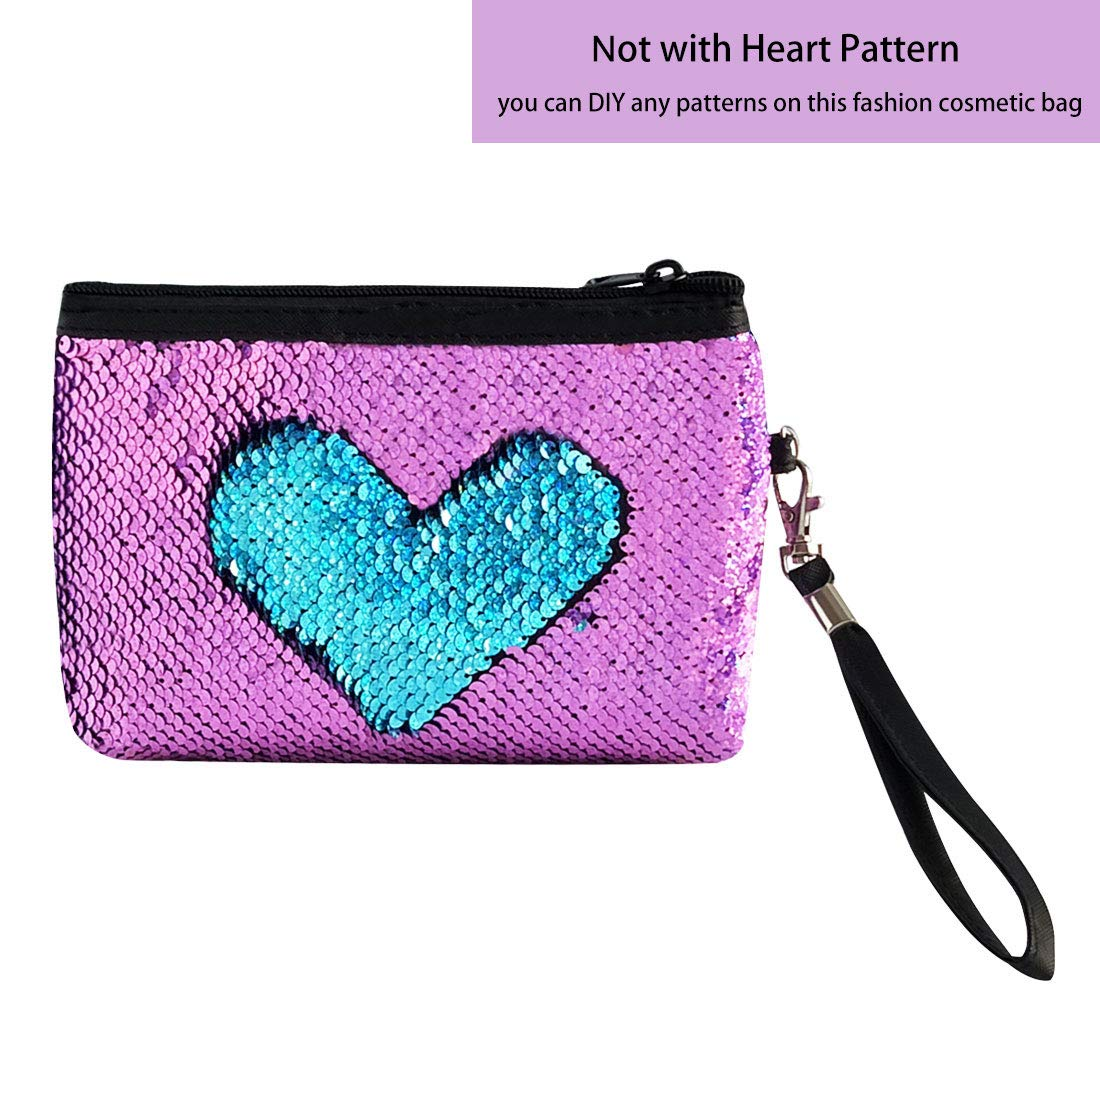 Home Office Storage Home & Garden Back To School Pencil Case Mermaid Sequins Colorful Cosmetic Bag Novelty Pencil Bag For Girls Kids Gift Fashion Glitter Handbag